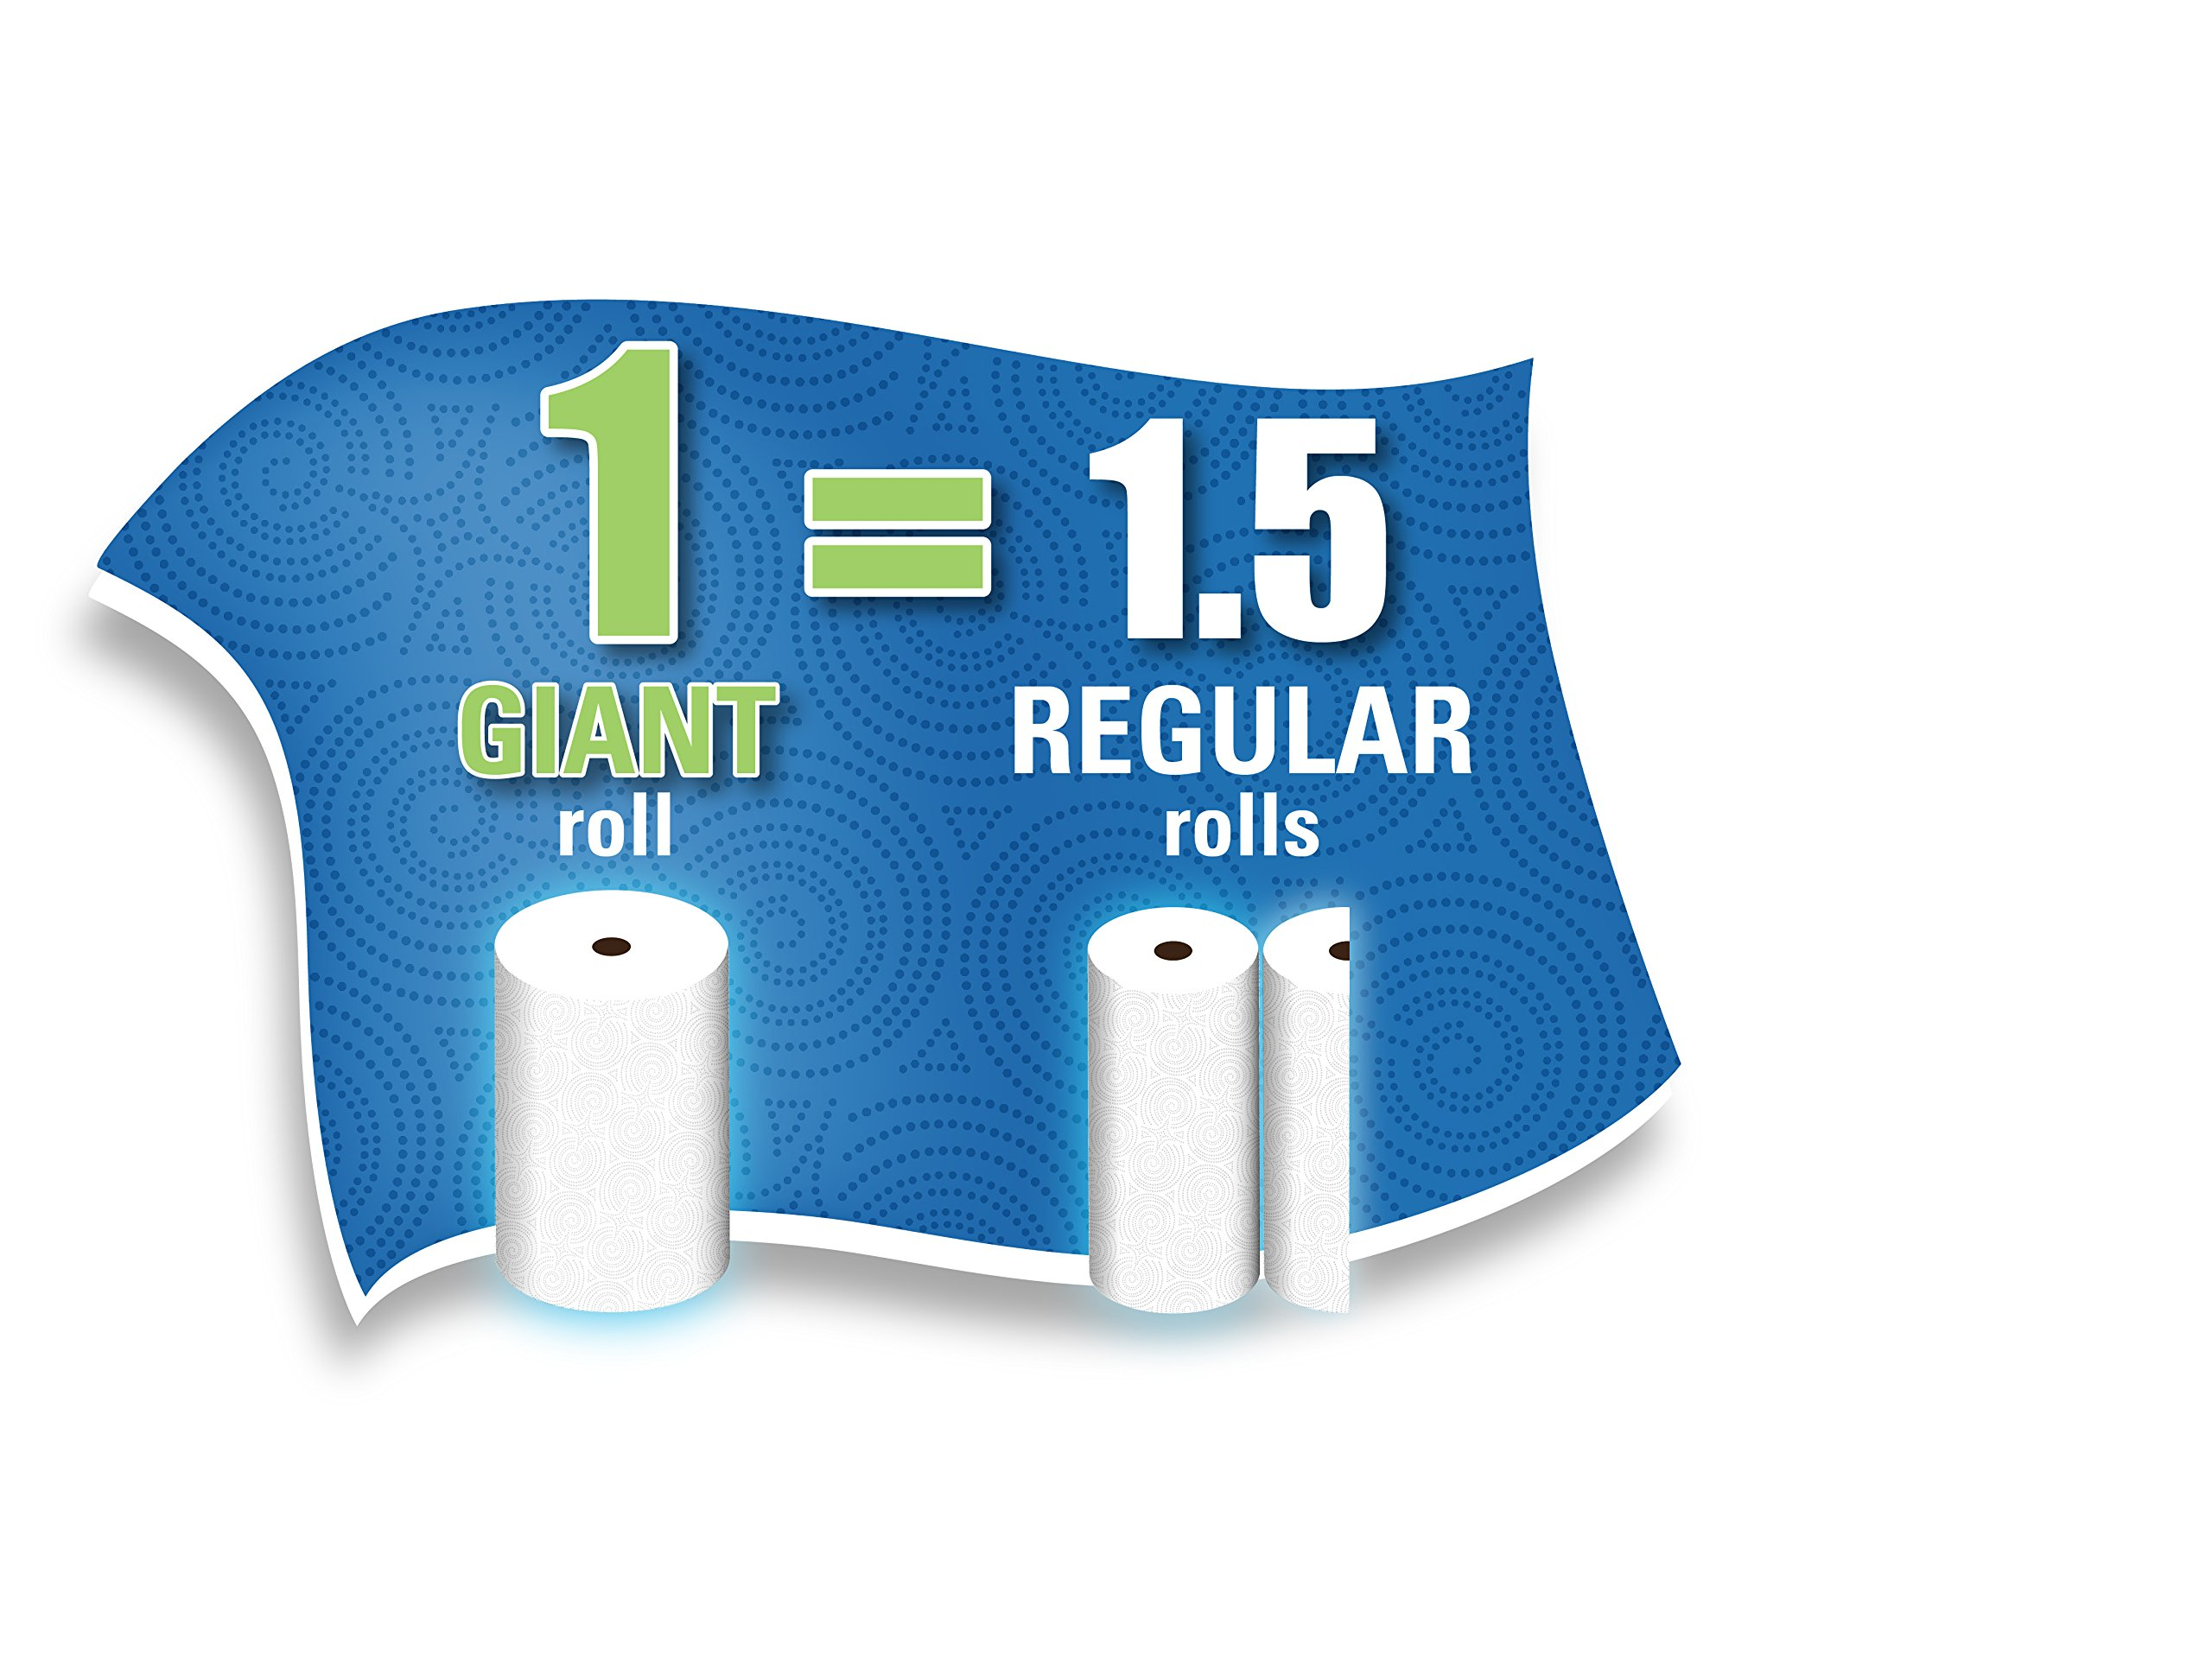 Sparkle Paper Towels, 24 Giant Rolls, Pick-A-Size, Spirited Prints